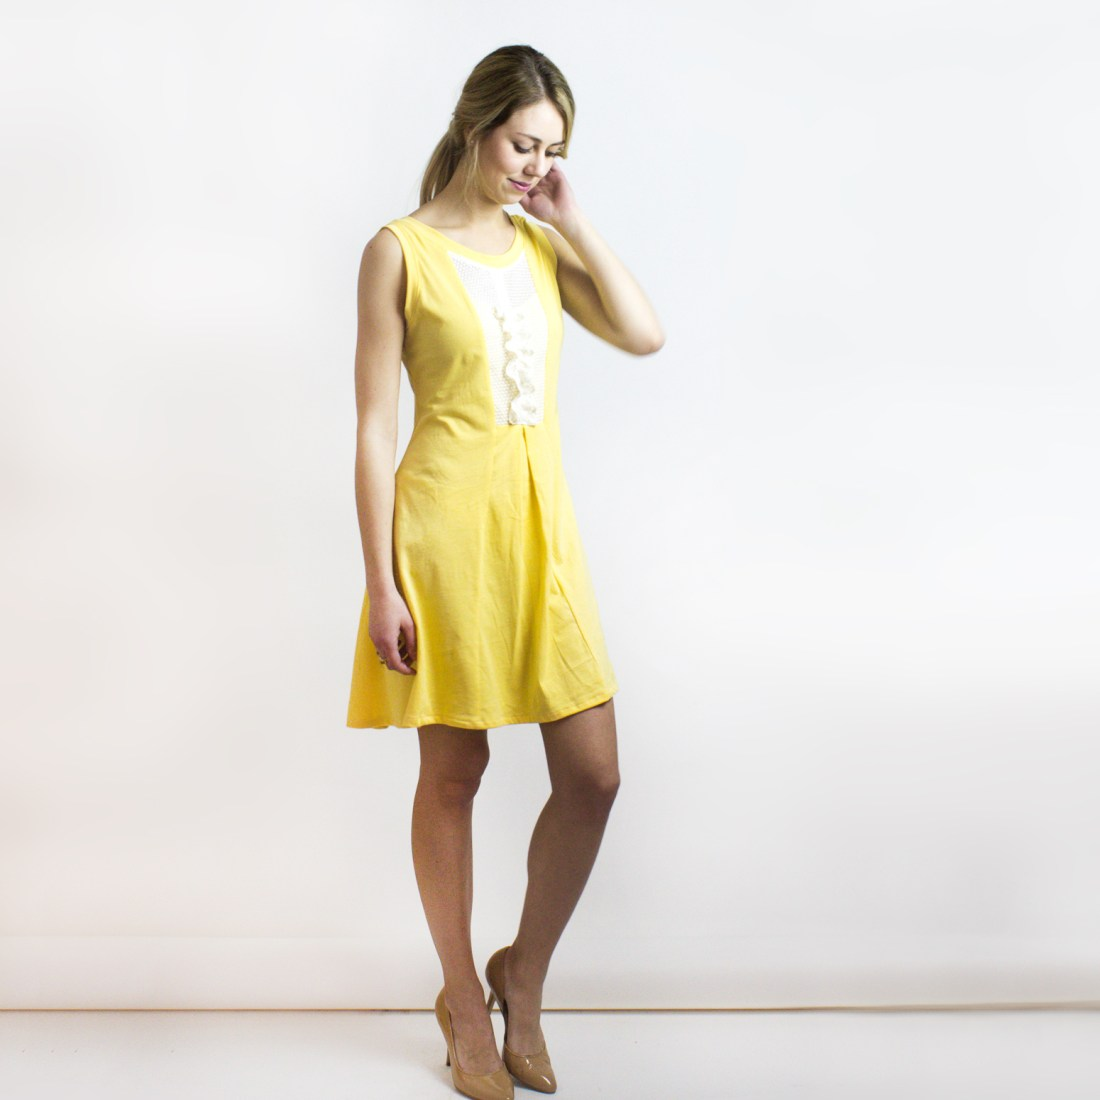 Sunshine Yellow Blake Beach Dress (organic cotton & lace trim) from Simone's Rose SS16 Collection | eco-conscious and sustainable women's fashion label made in downtown Toronto